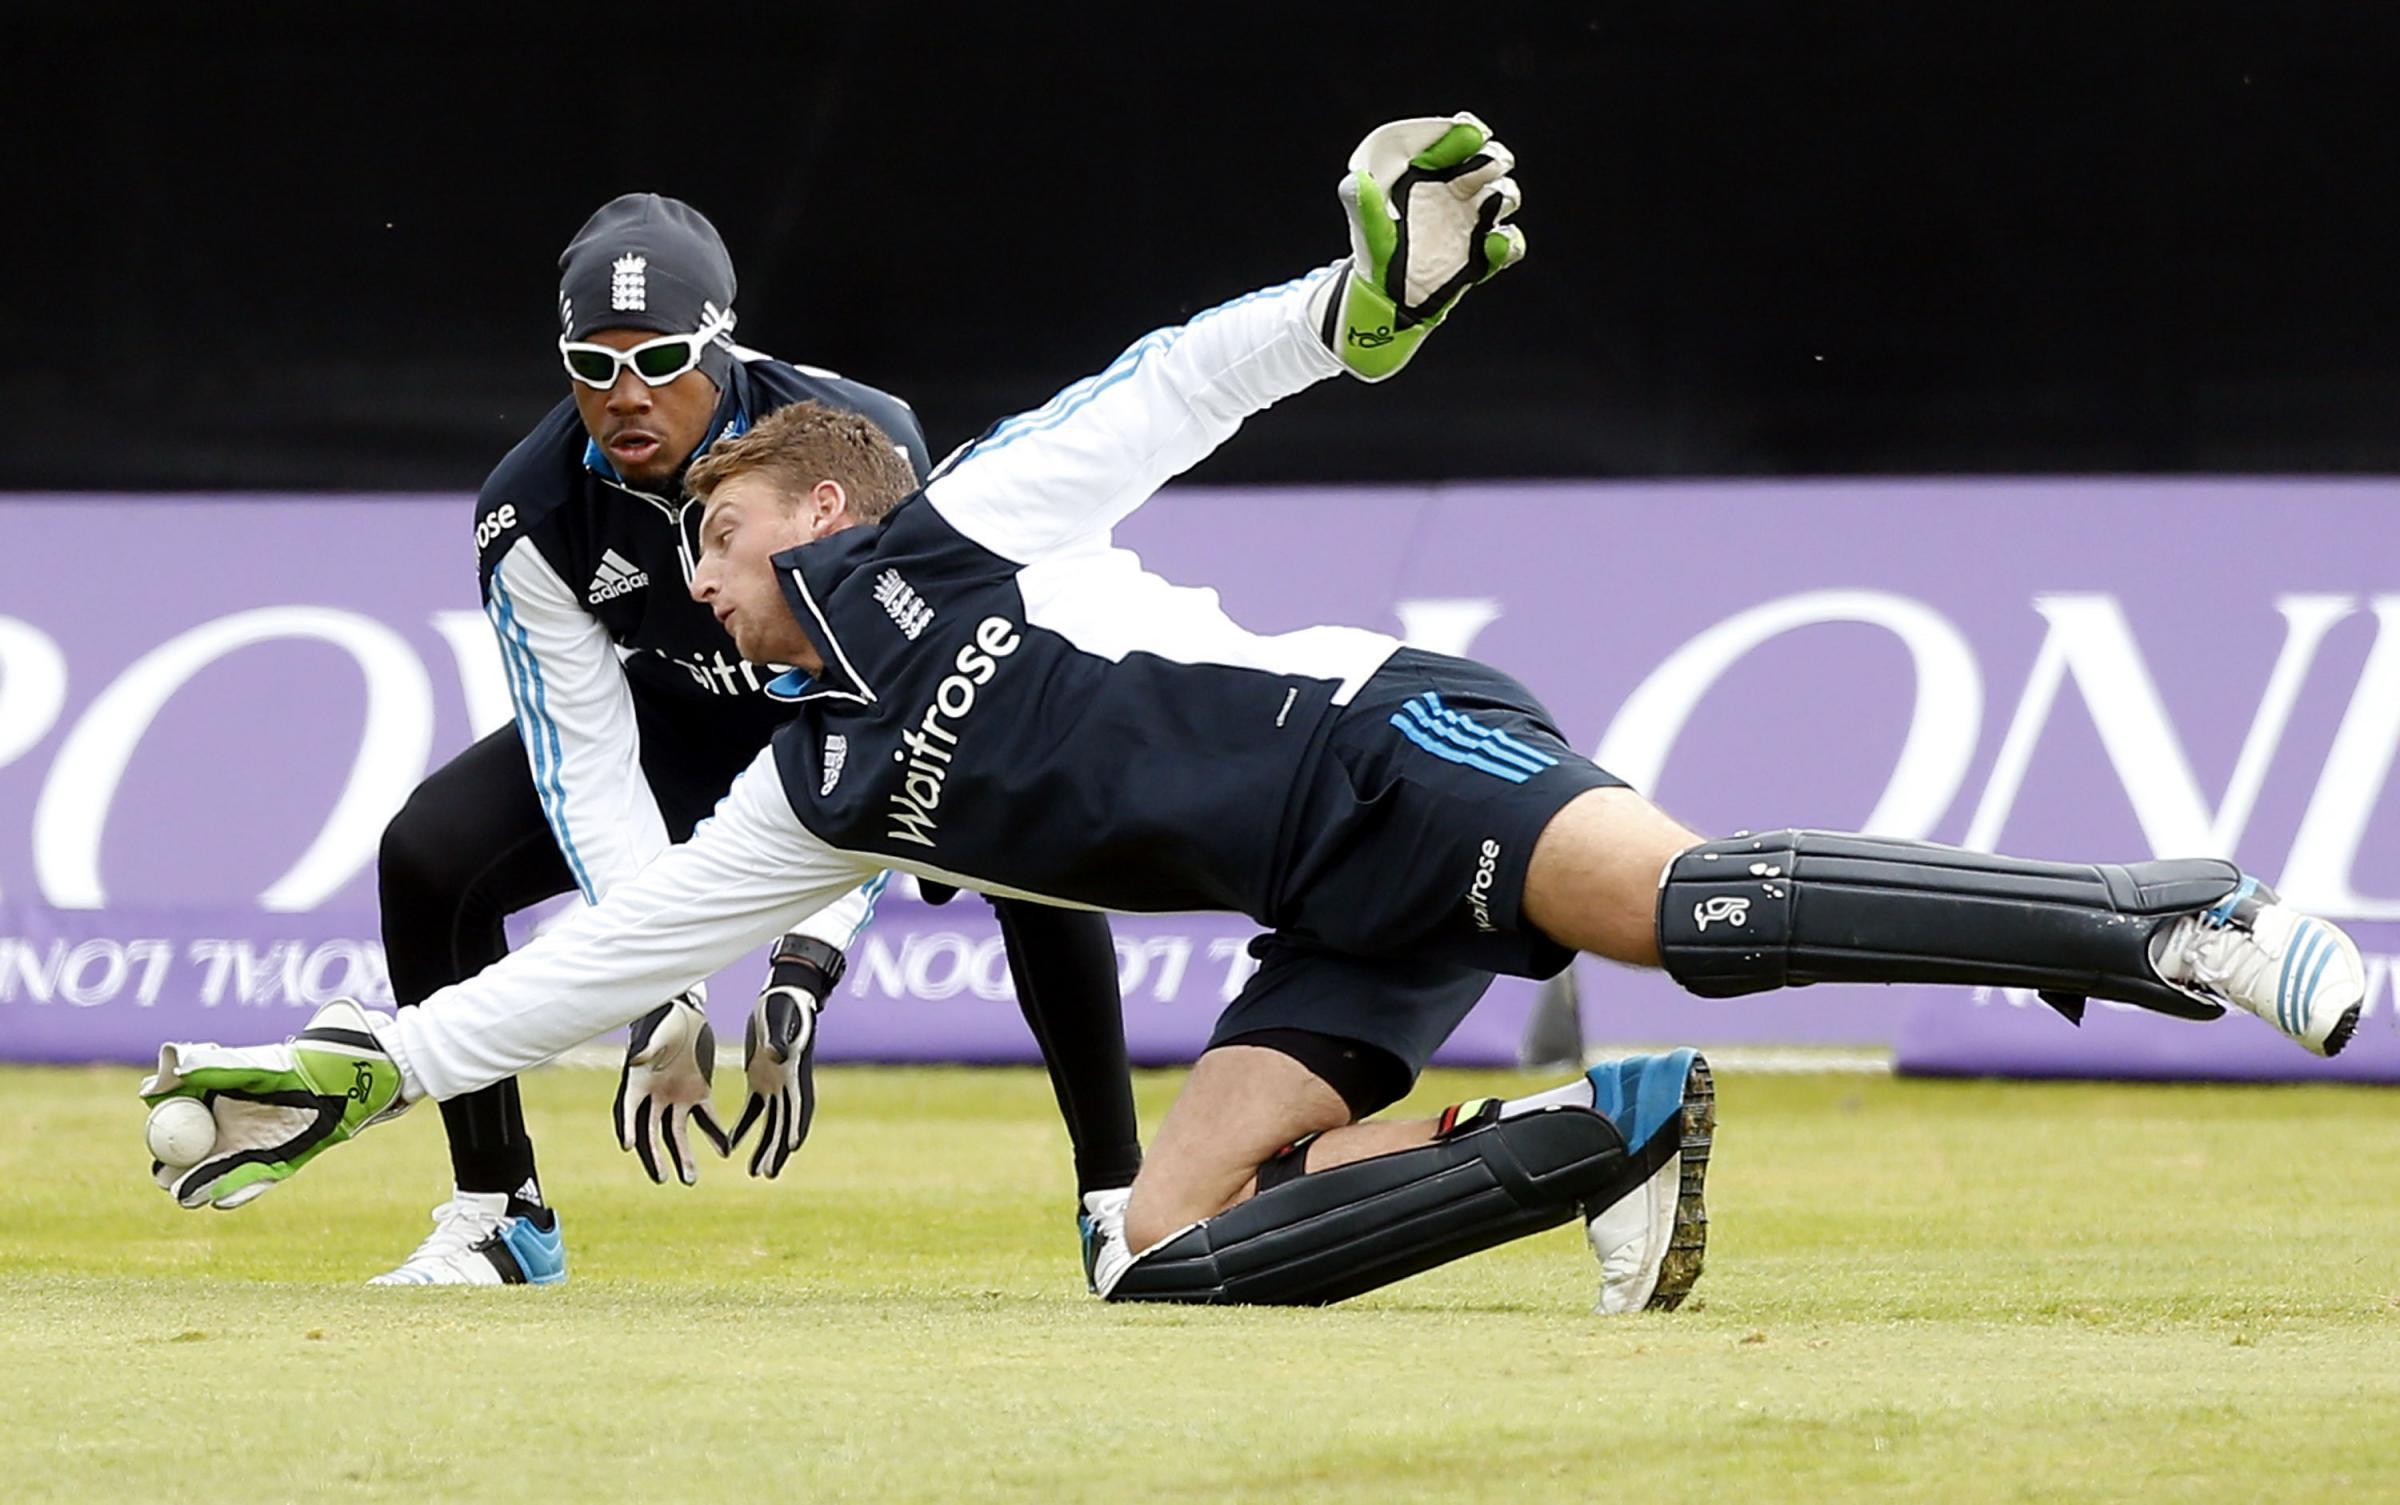 England's Jos Buttler (front) with Chris Jordan during the a training session at Mannofield Cricket Ground, Aberdeen.